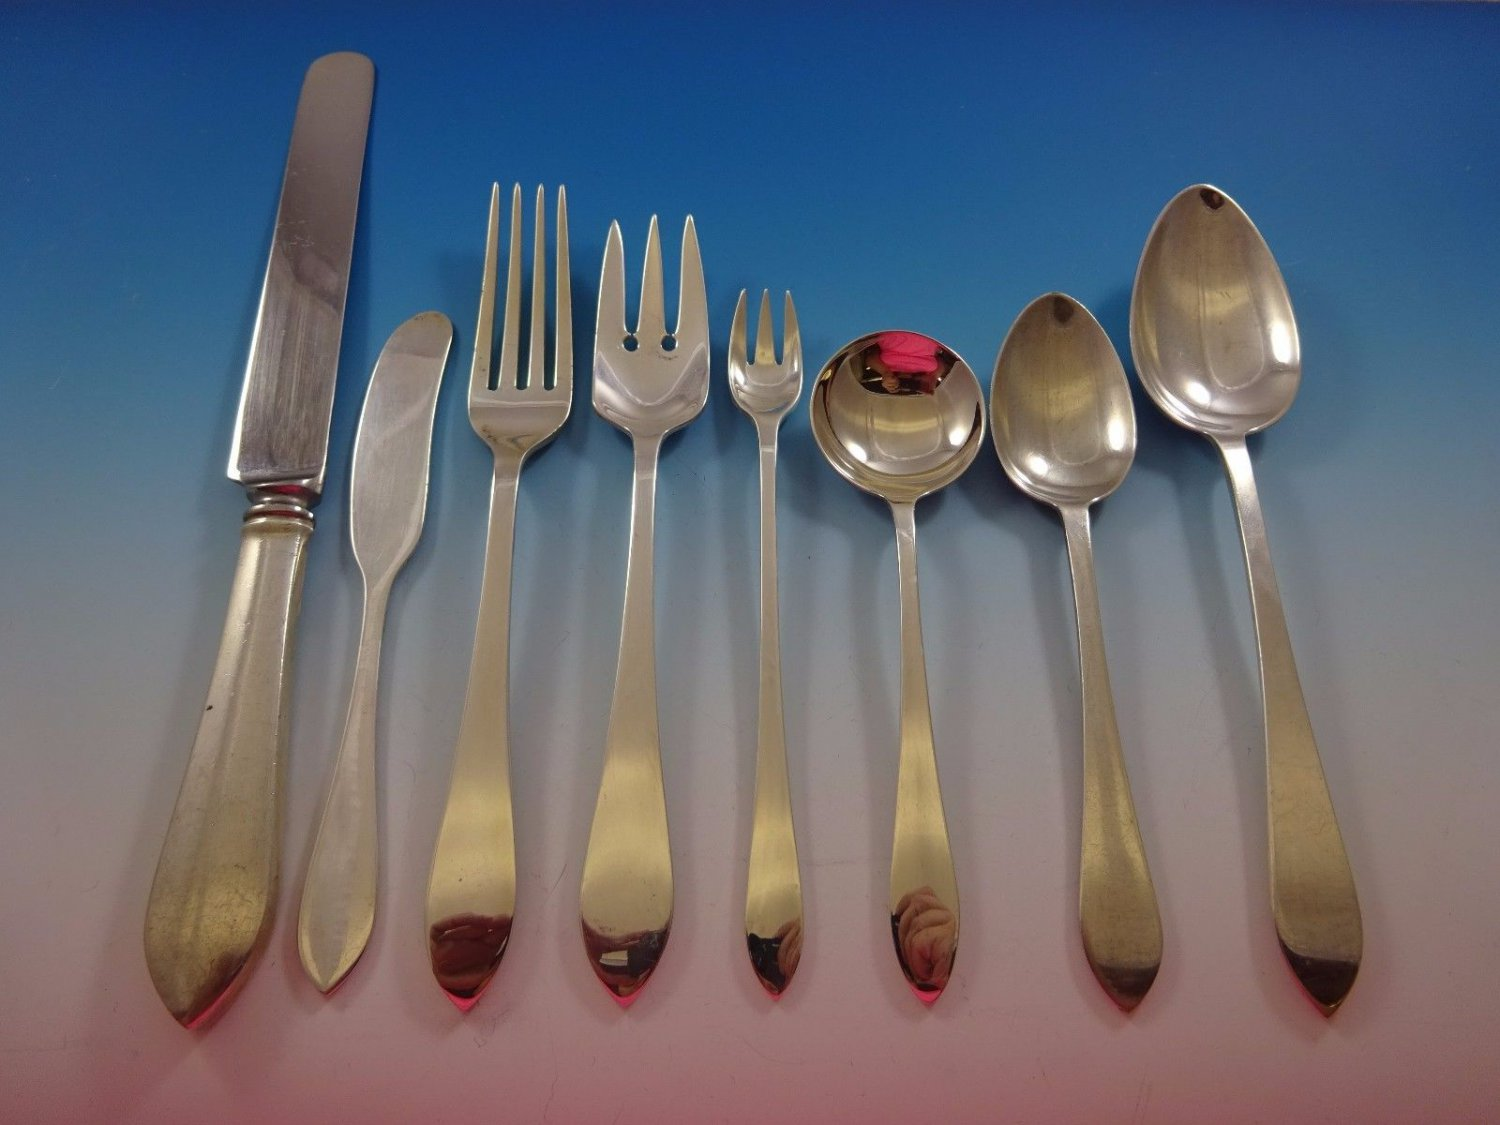 Faneuil by Tiffany and Co Sterling Silver Flatware Service For 8 Set 64 Pieces